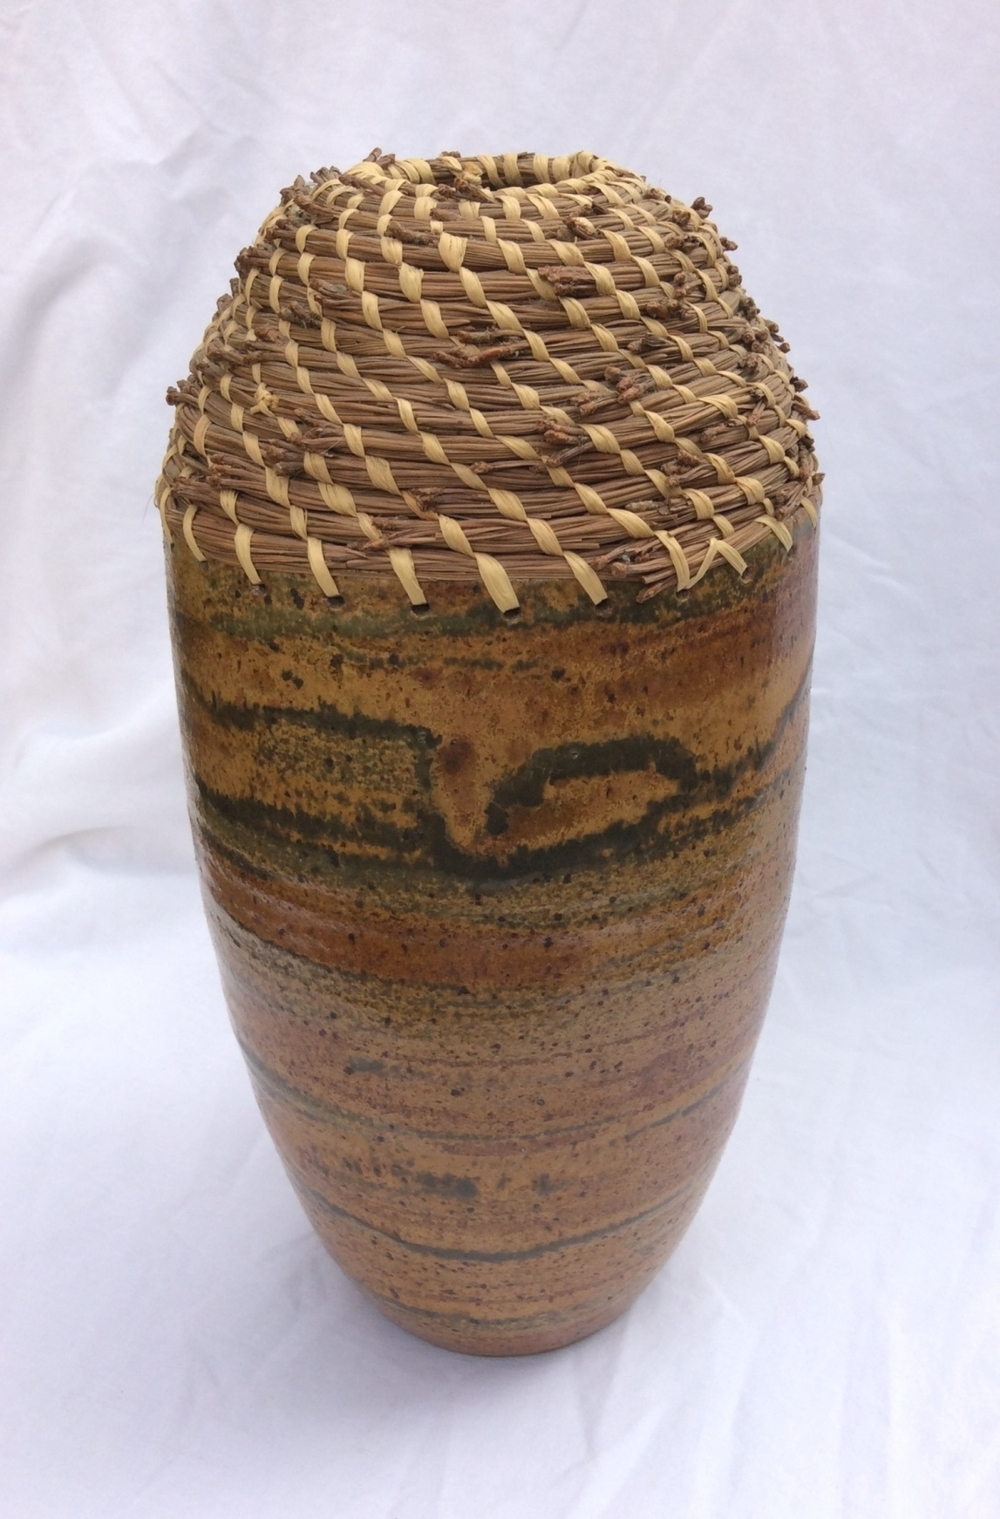 Basket Pot #1